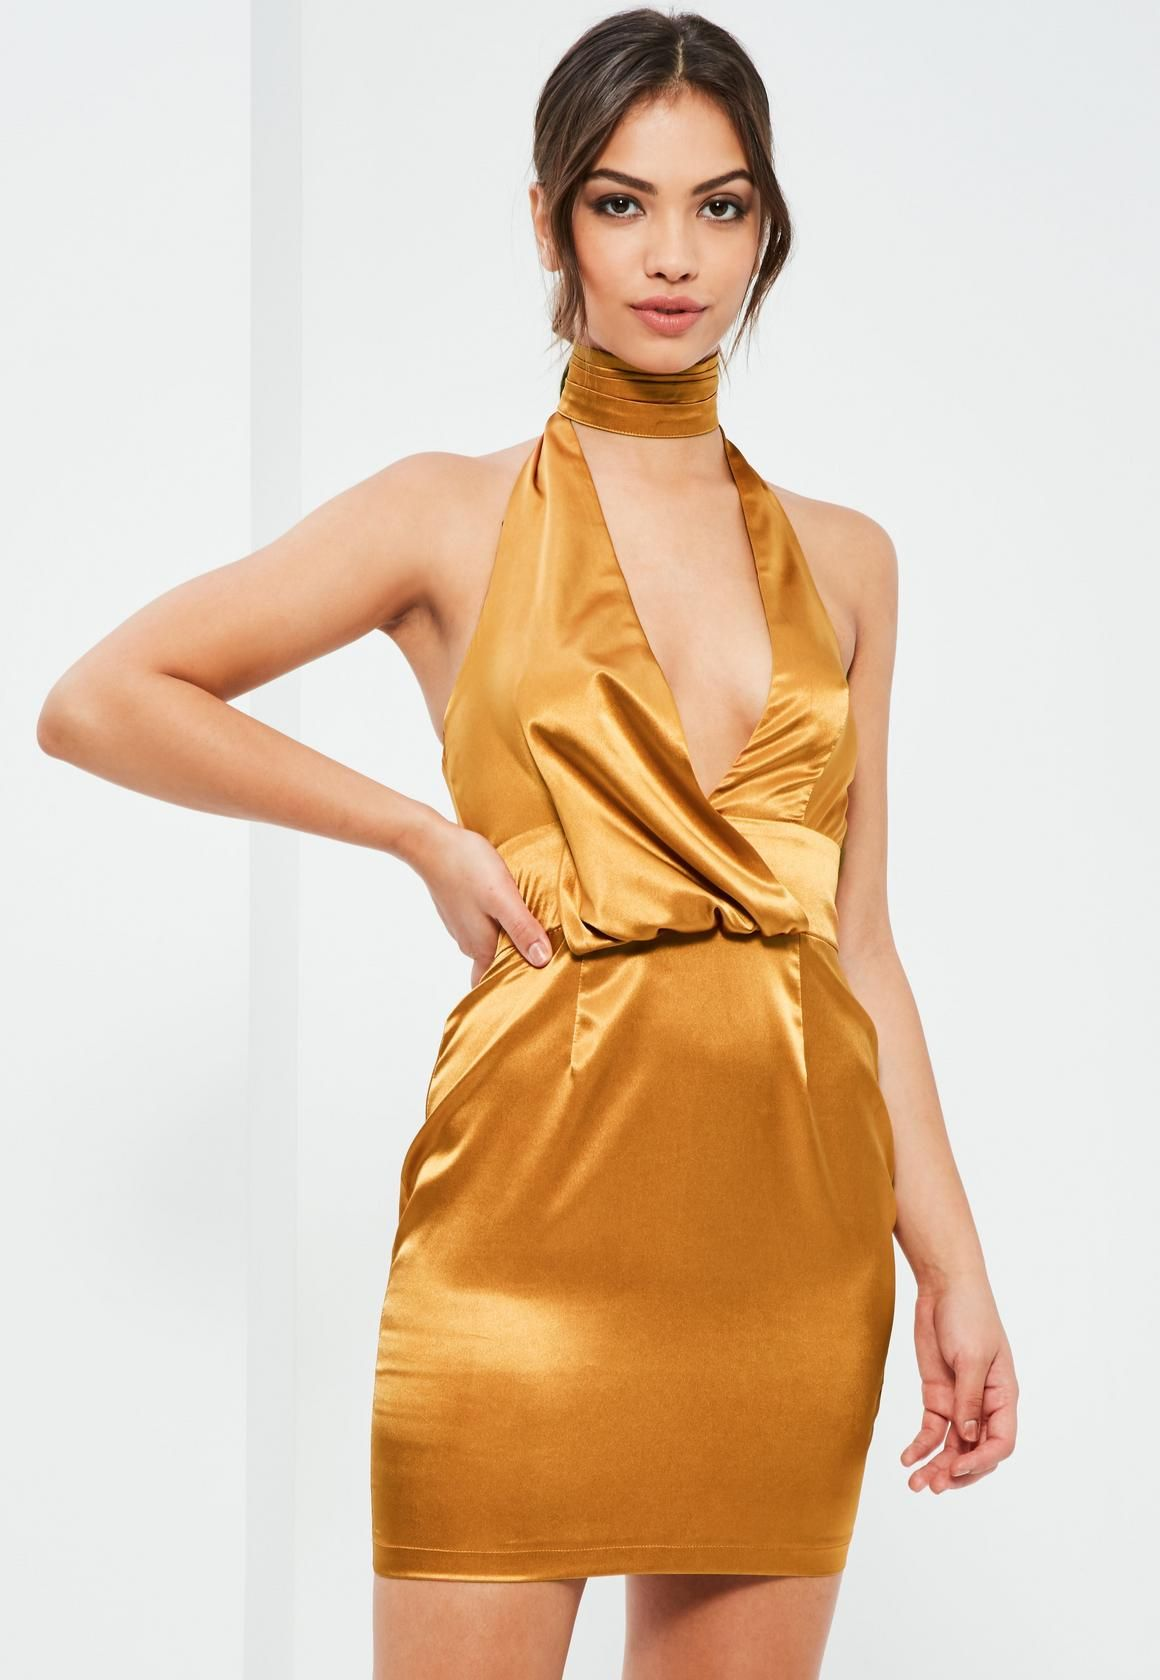 Shift Gold dress pictures rare photo